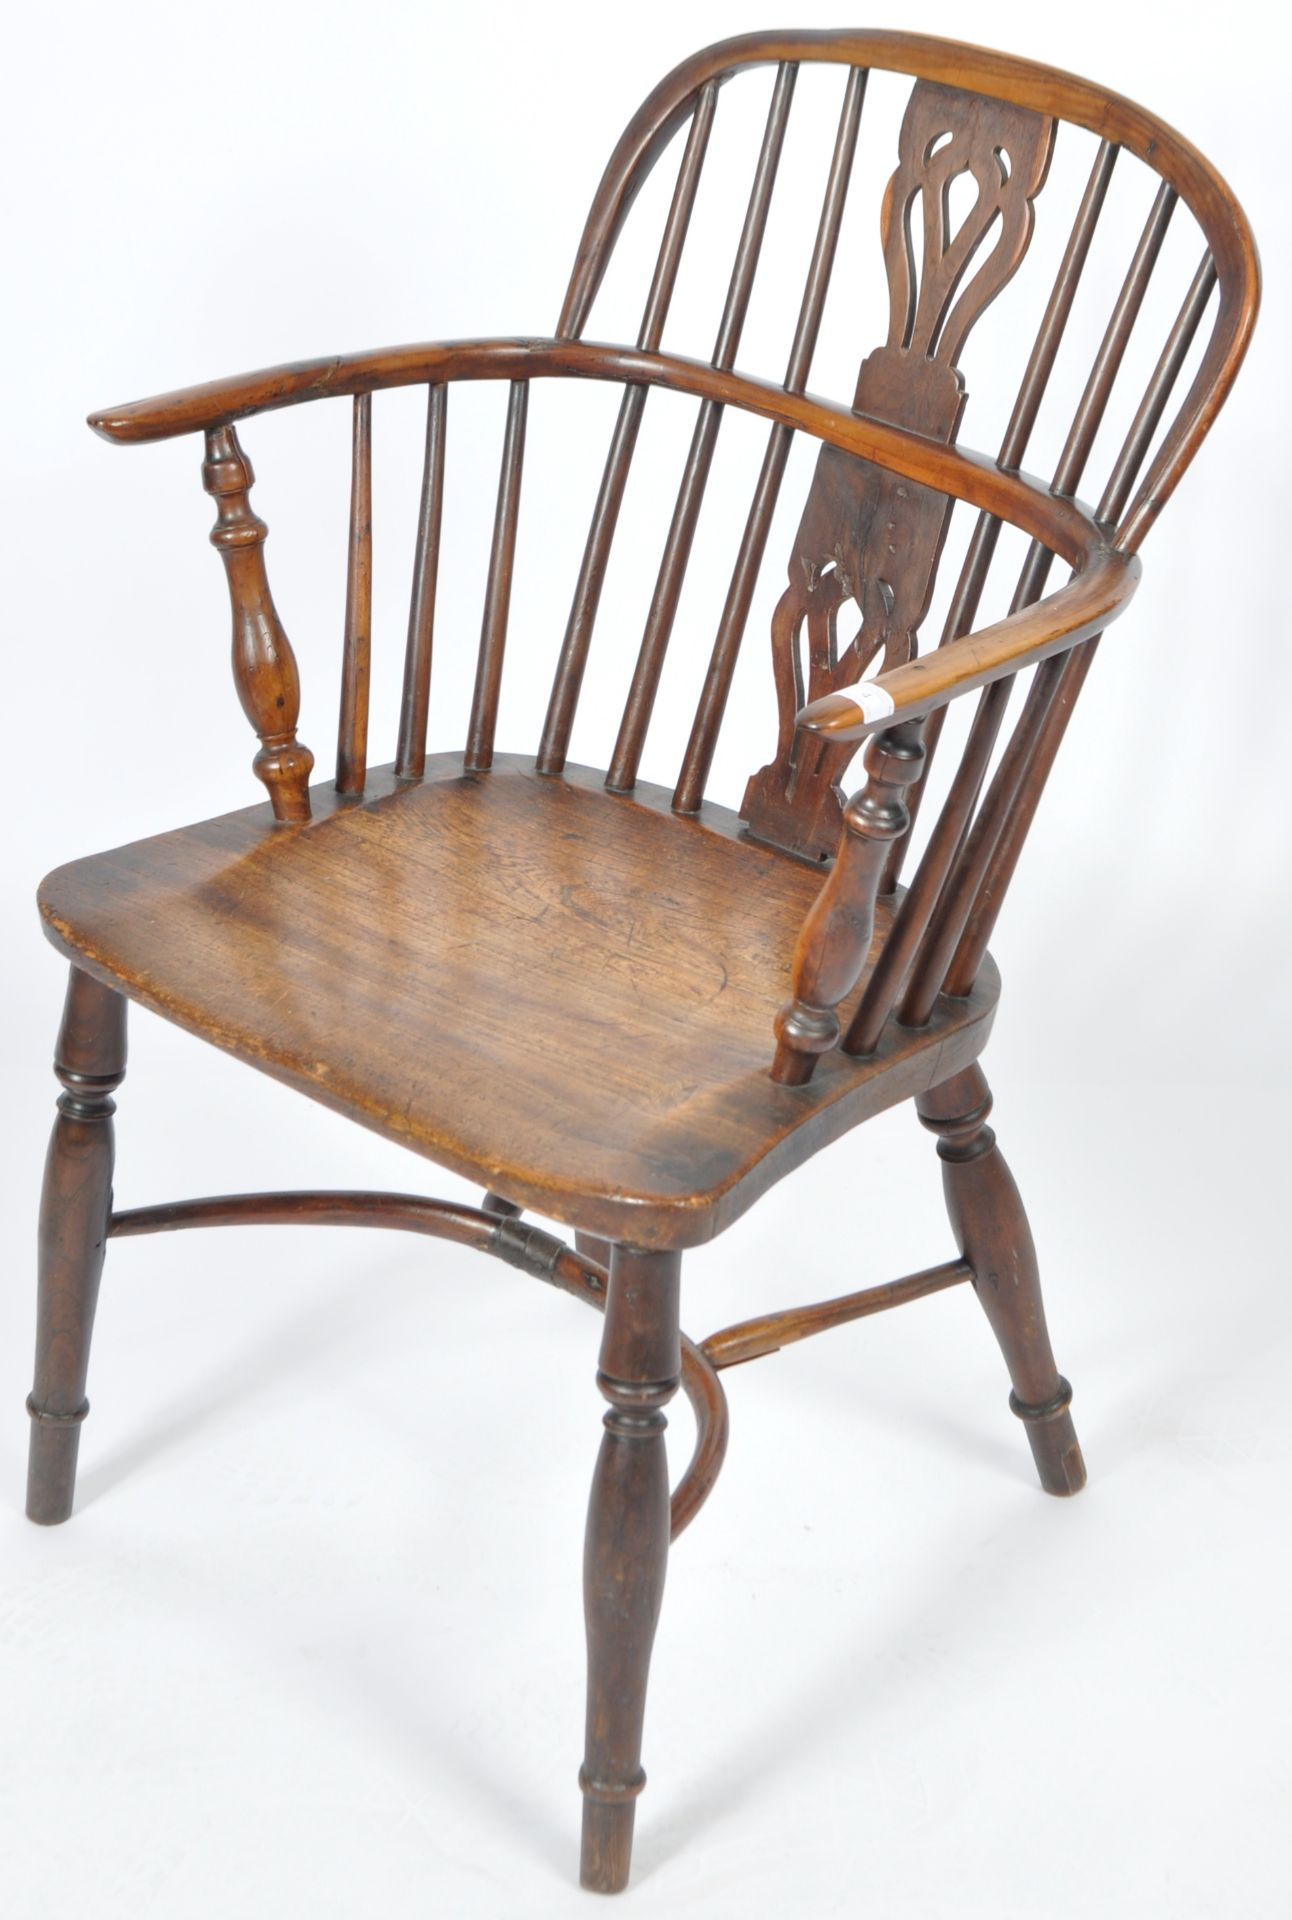 ANTIQUE GEORGIAN YEW AND ELM CRINOLINE WINDSOR ARMCHAIR - Image 3 of 9